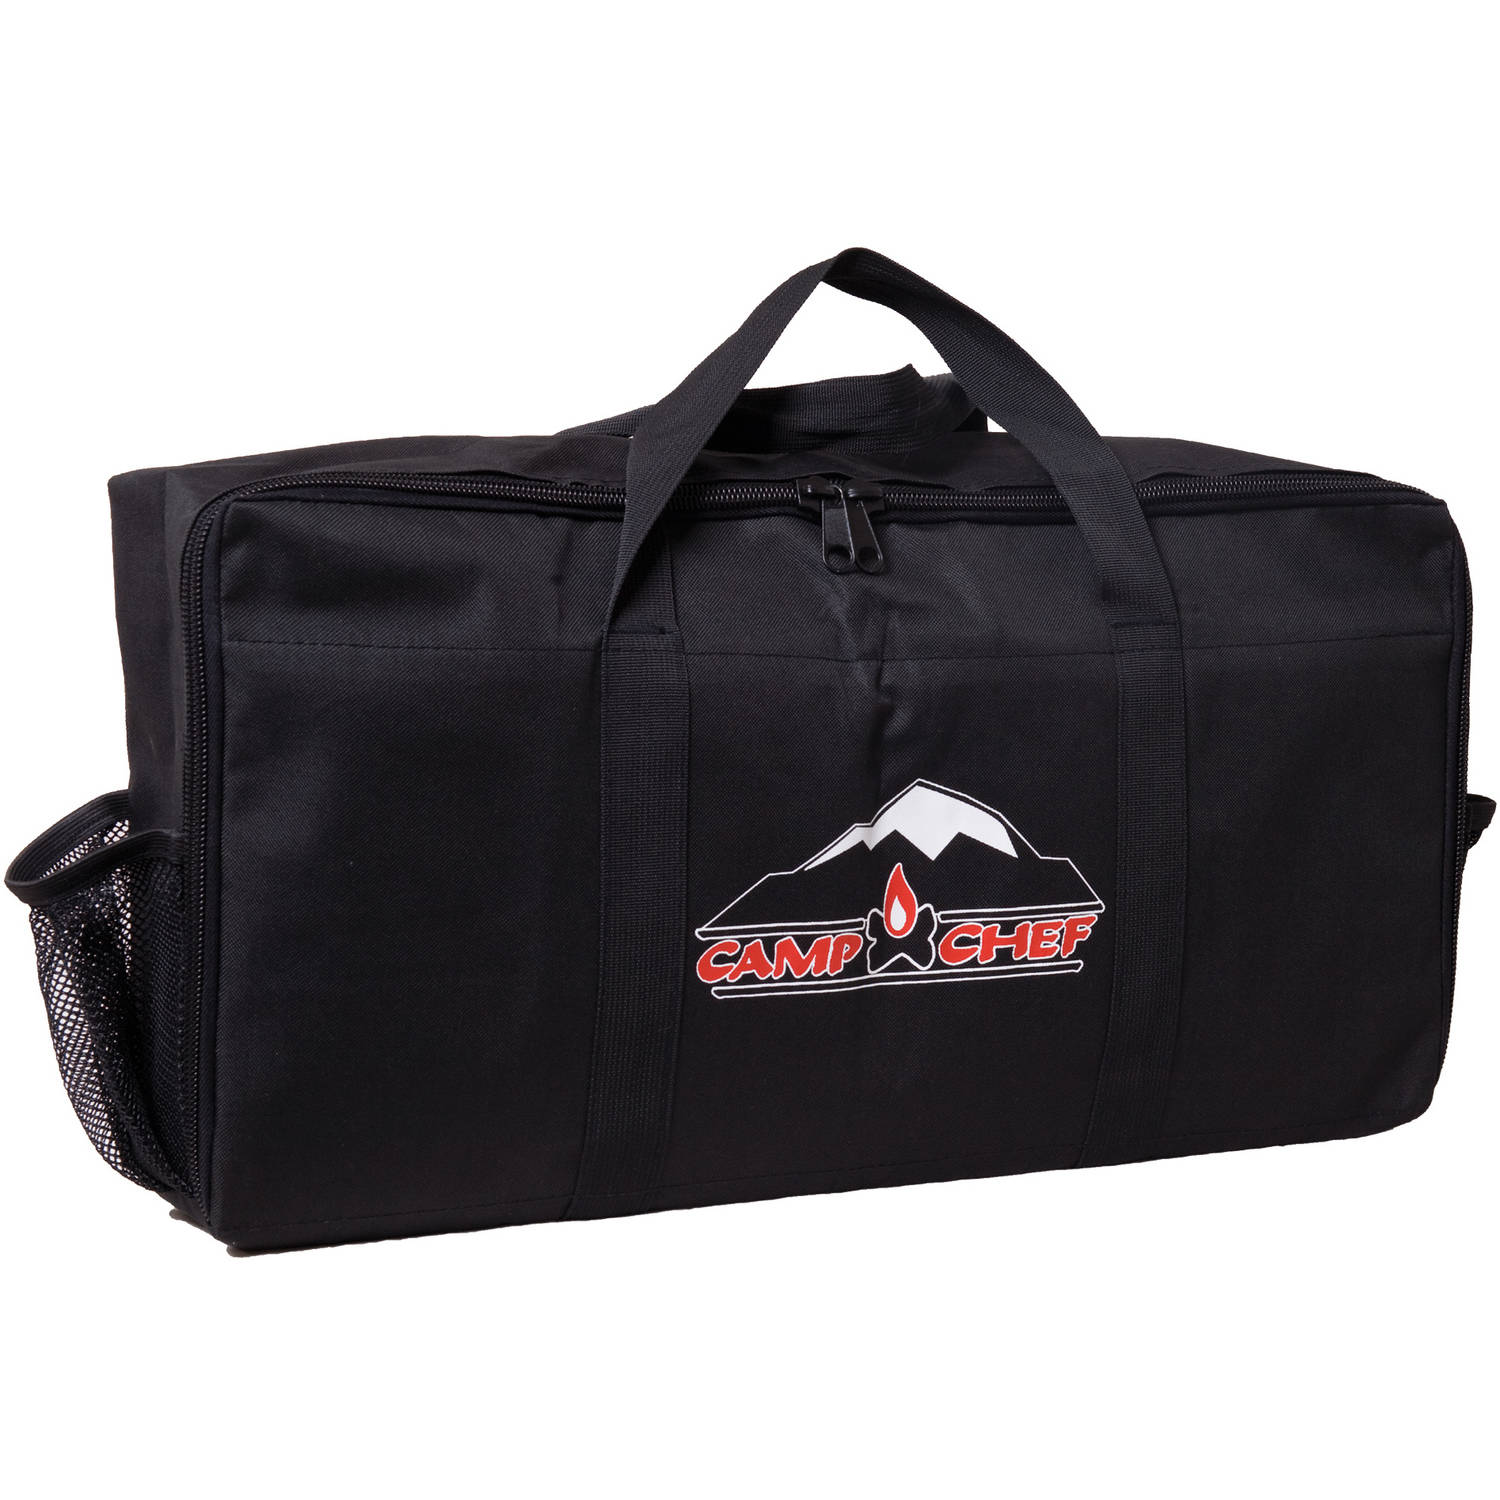 Camp Chef Mountain Stove Carry Bag with Mesh Pockets